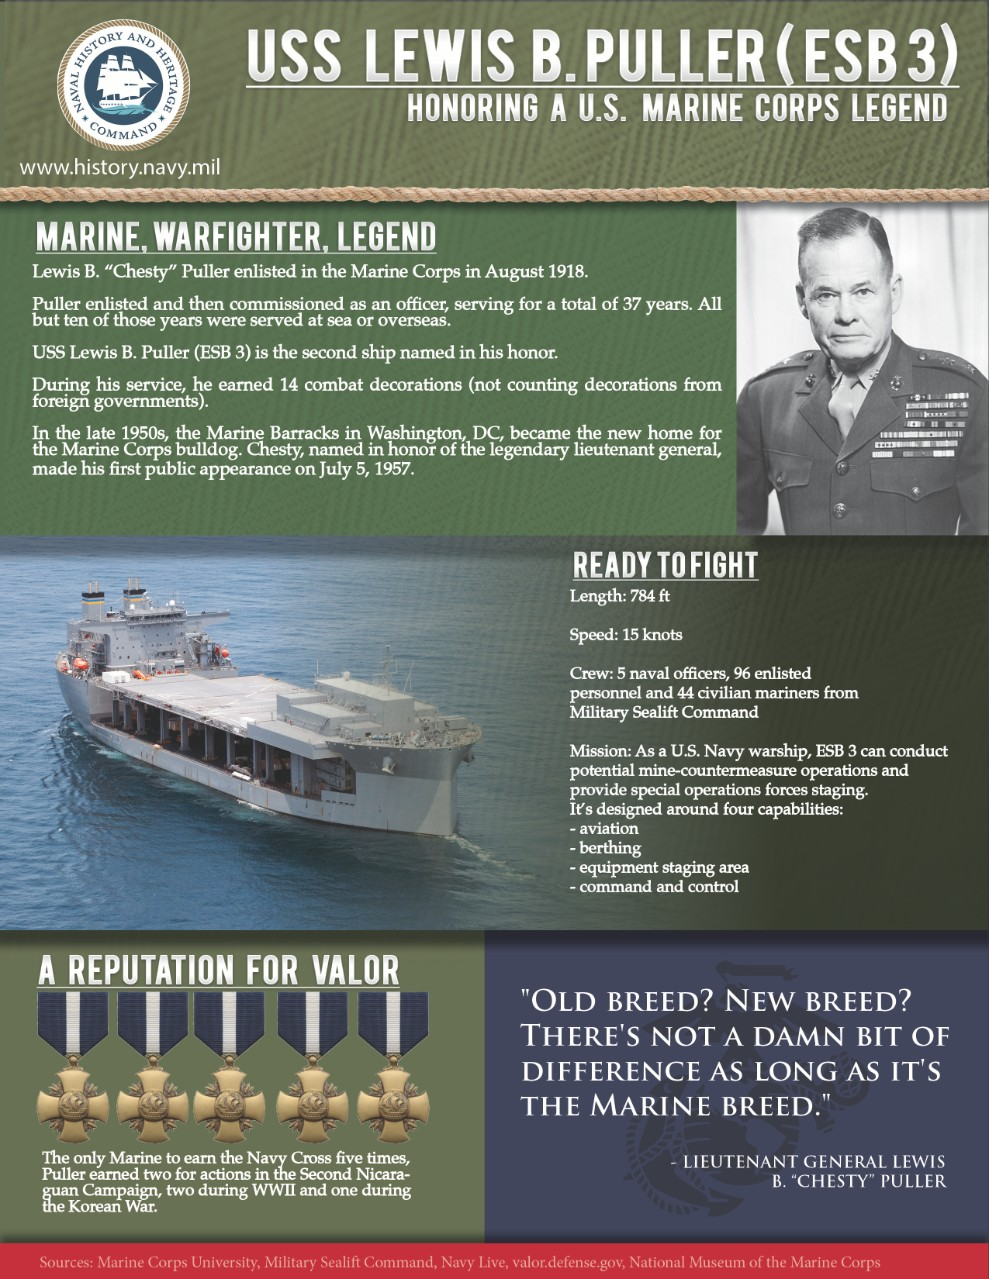 An Infographic of Lewis B. Puller